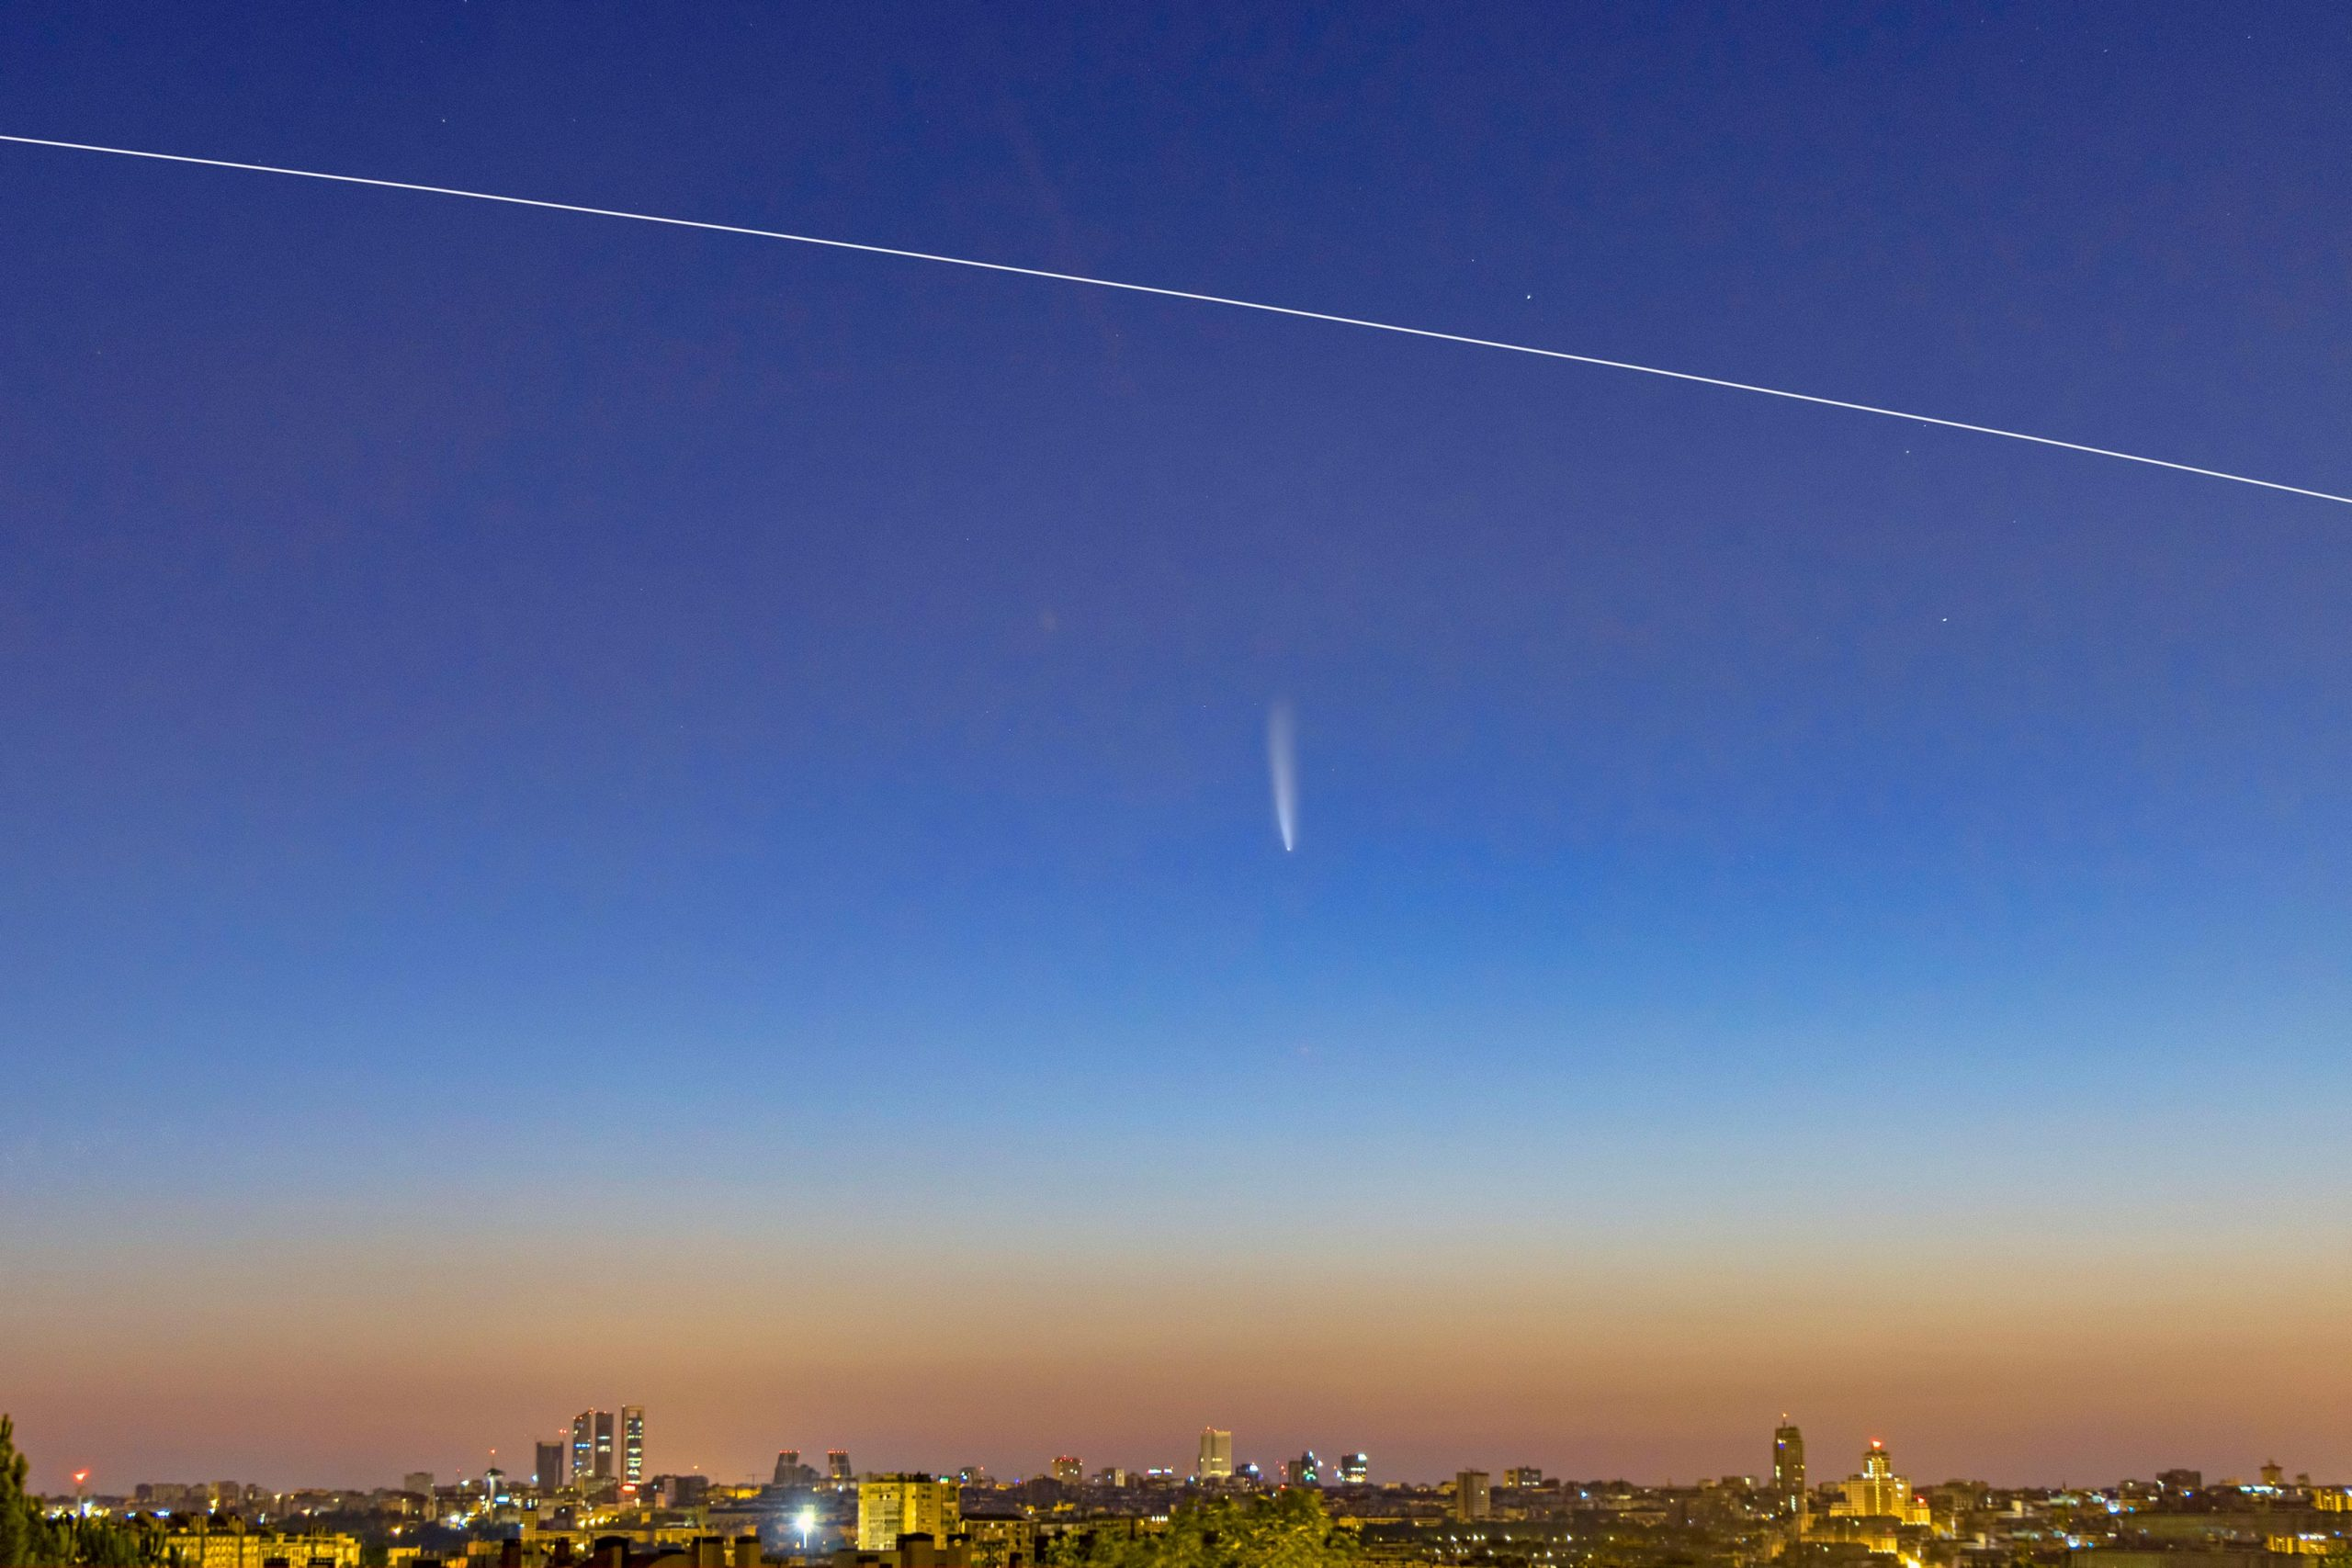 Stunning View of Comet NEOWISE Over Madrid As Space Station Streaks Past - SciTechDaily